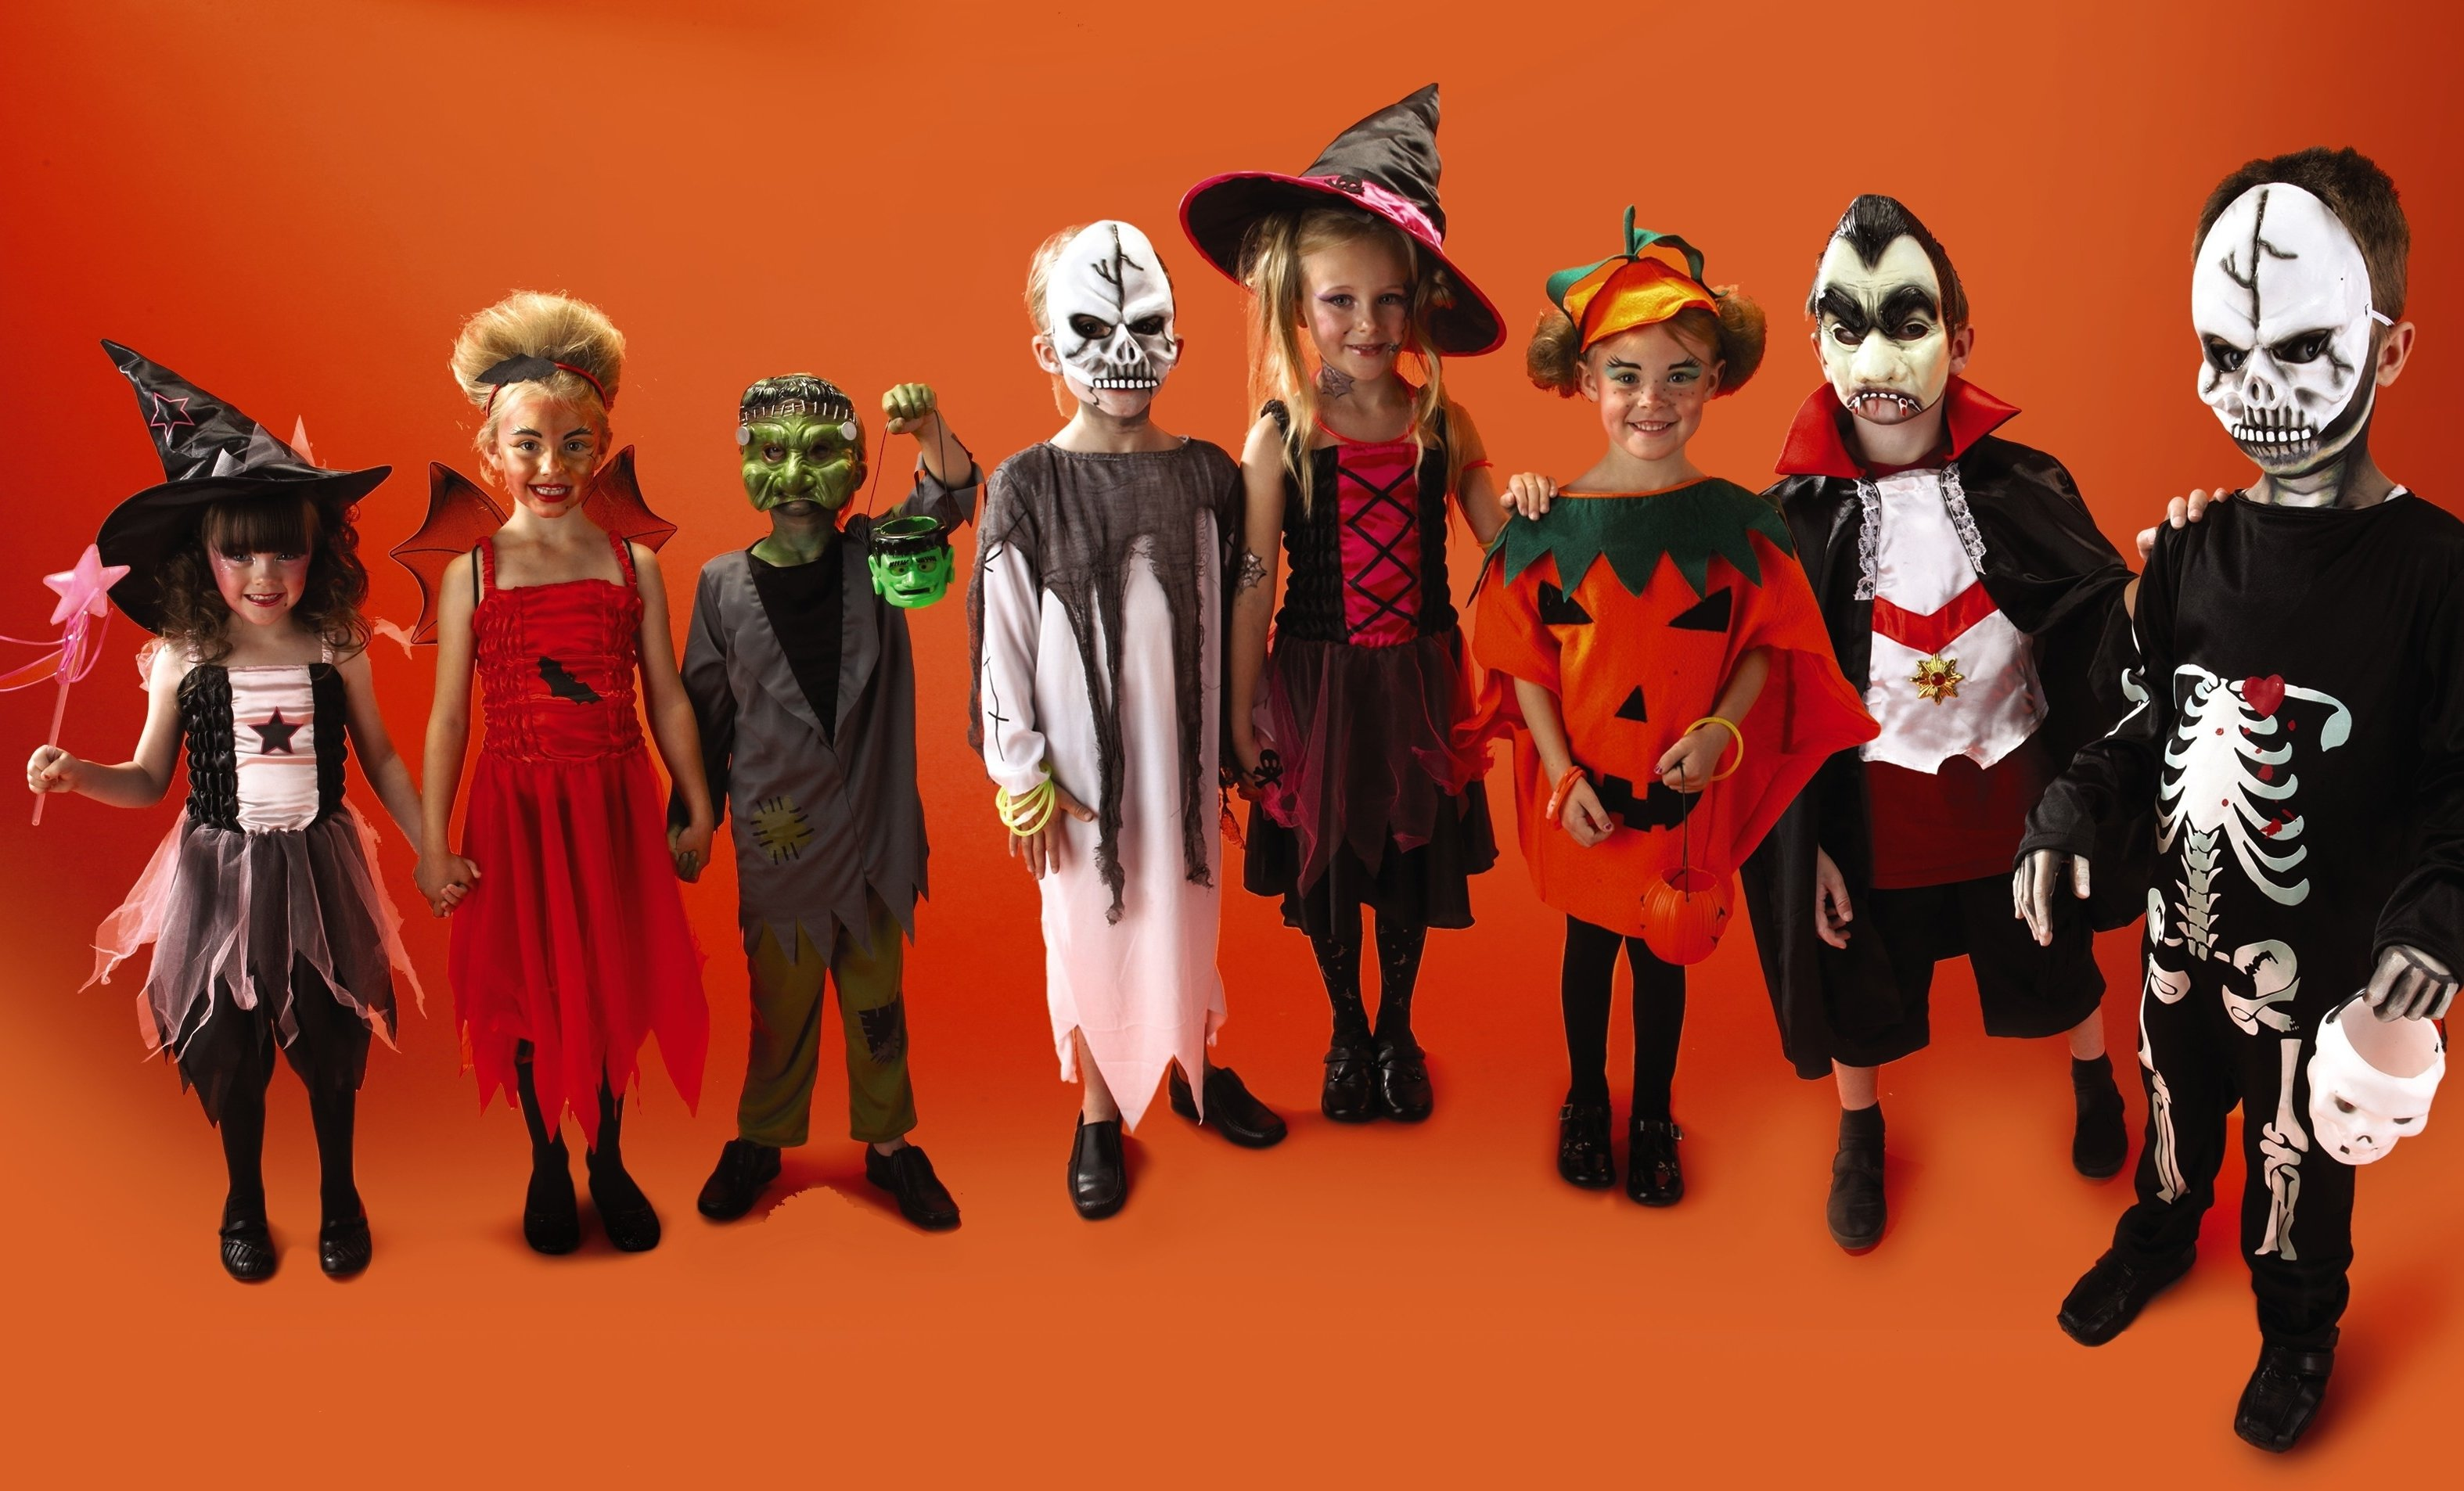 10 Fashionable Halloween Costume Ideas For Kids 7 childrens halloween costume ideas lakeside collection blog 2 2020